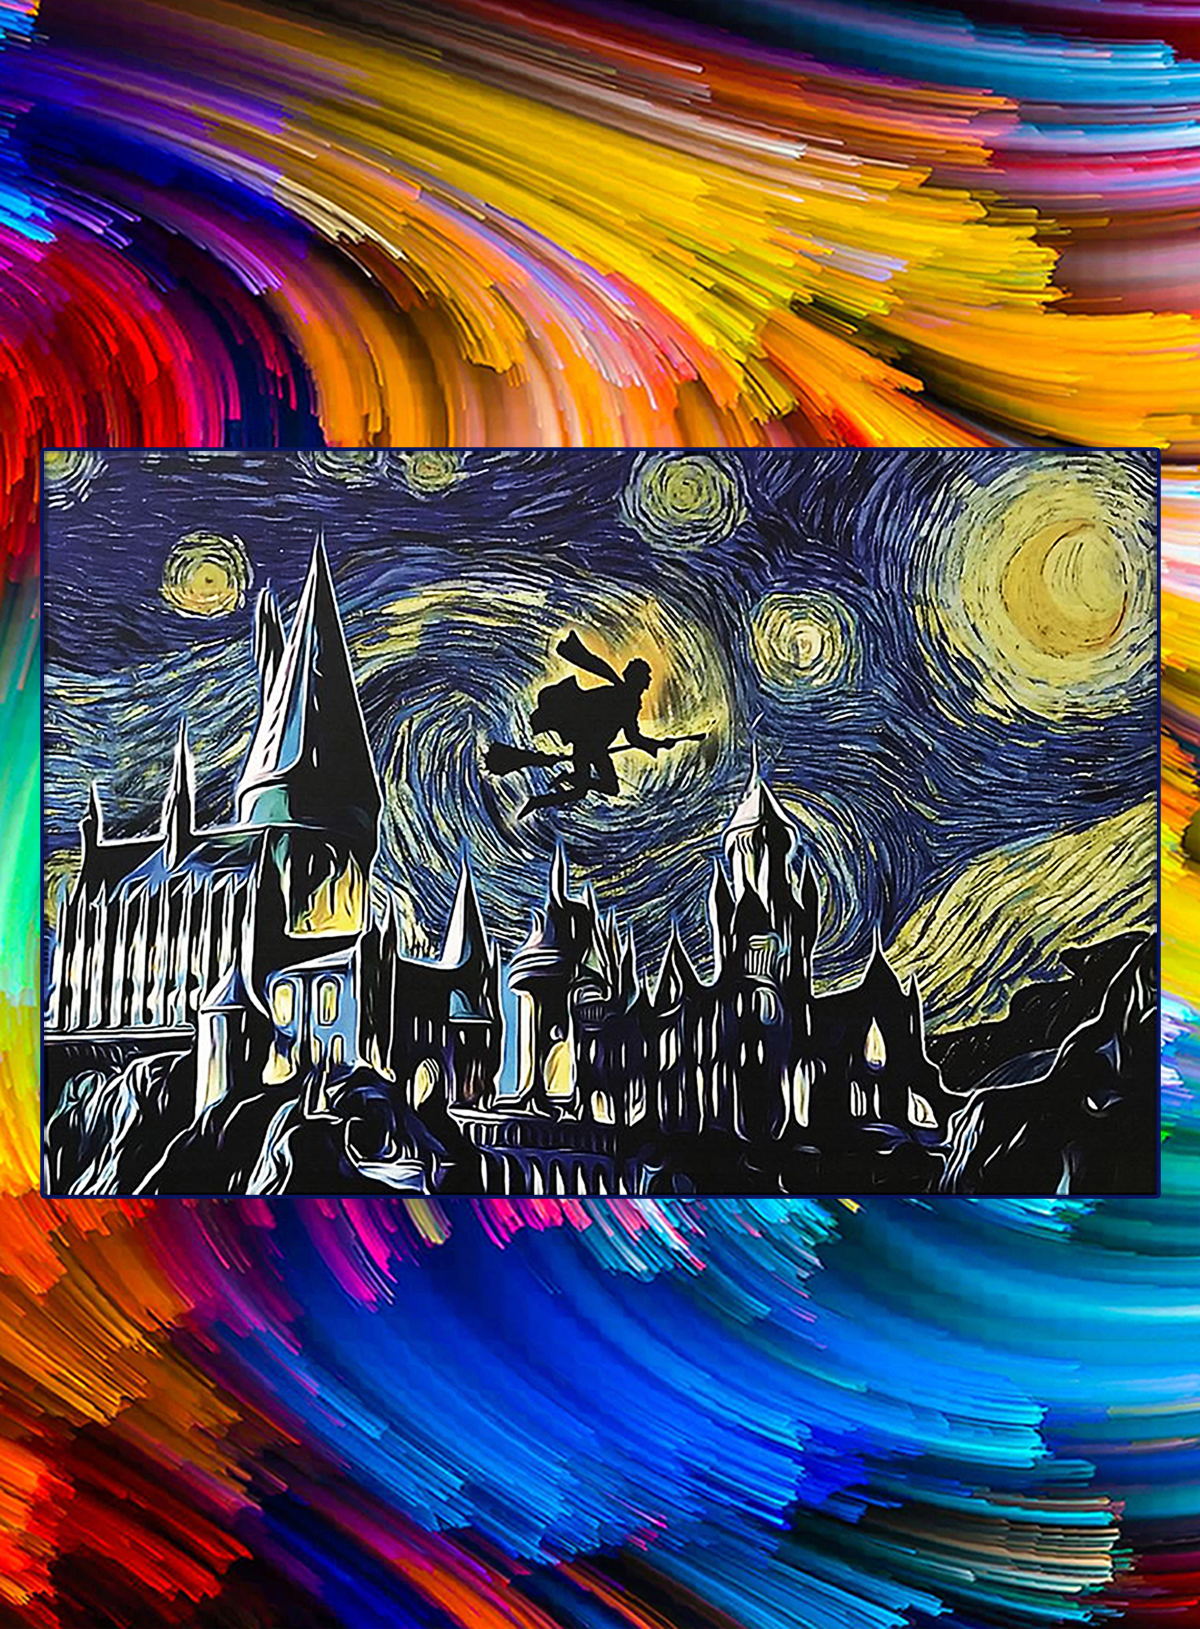 Hogwarts harry potter flying starry night poster - A1